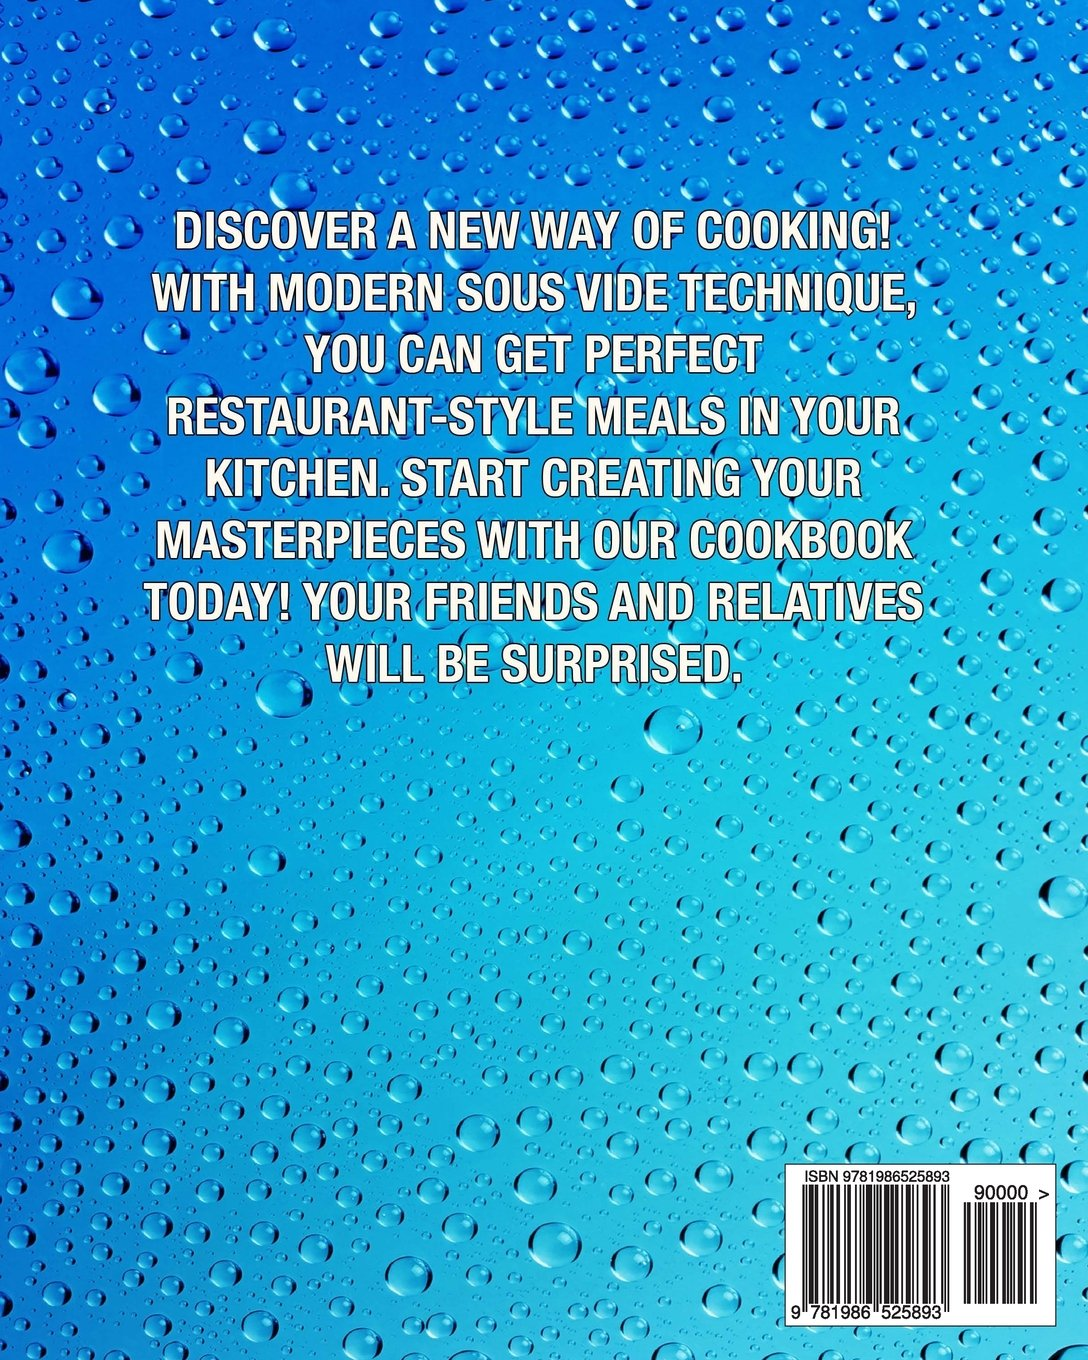 Easy Sous Vide Cookbook: The Guide to Gourmet Low-Temperature Cooking with  Top Rated 100 Healthy and Delicious Recipes for Perfect Everyday Home Meals:  ...